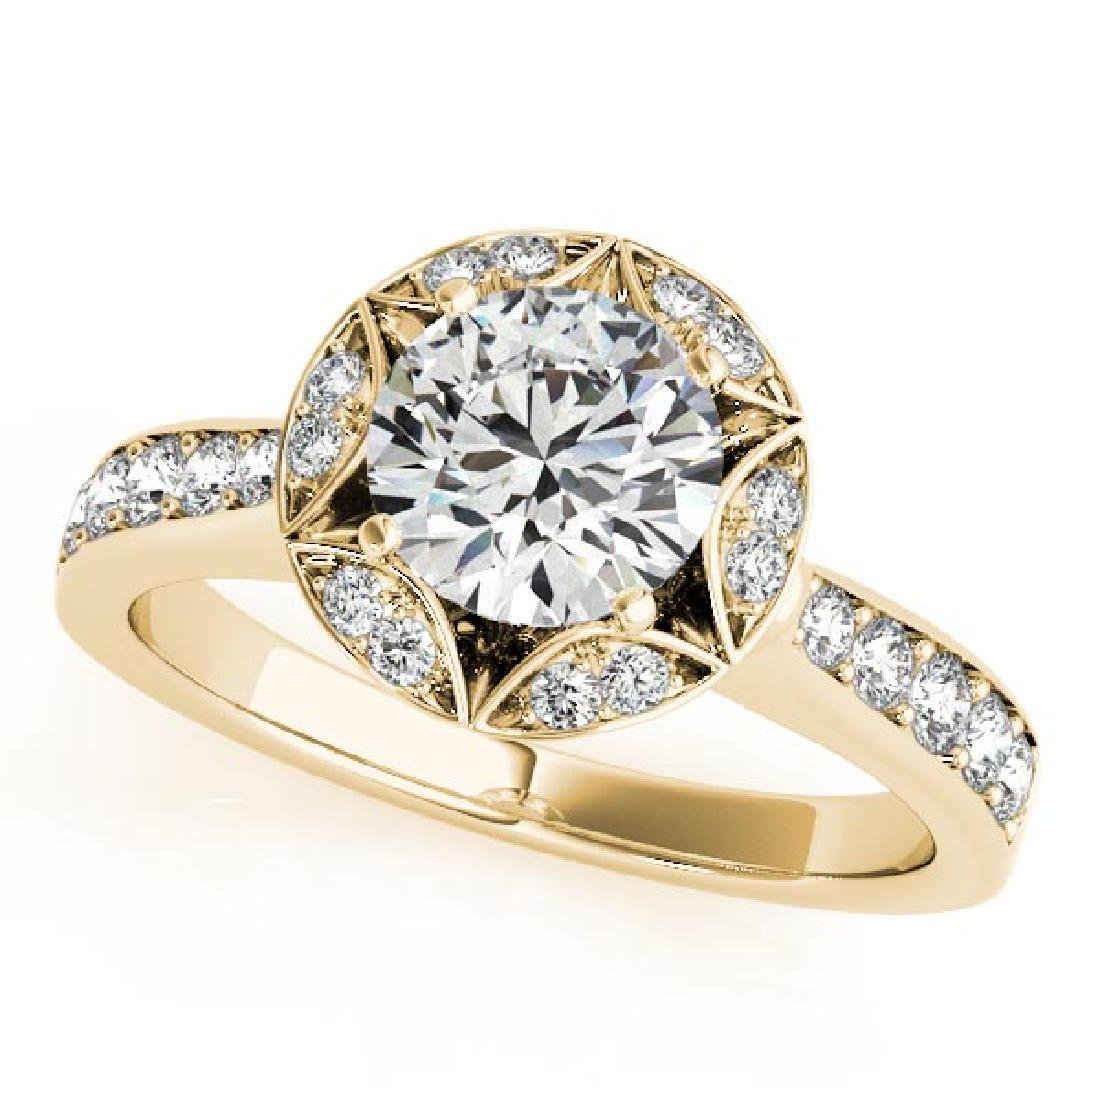 CERTIFIED 18K YELLOW GOLD 1.30 CT G-H/VS-SI1 DIAMOND HA